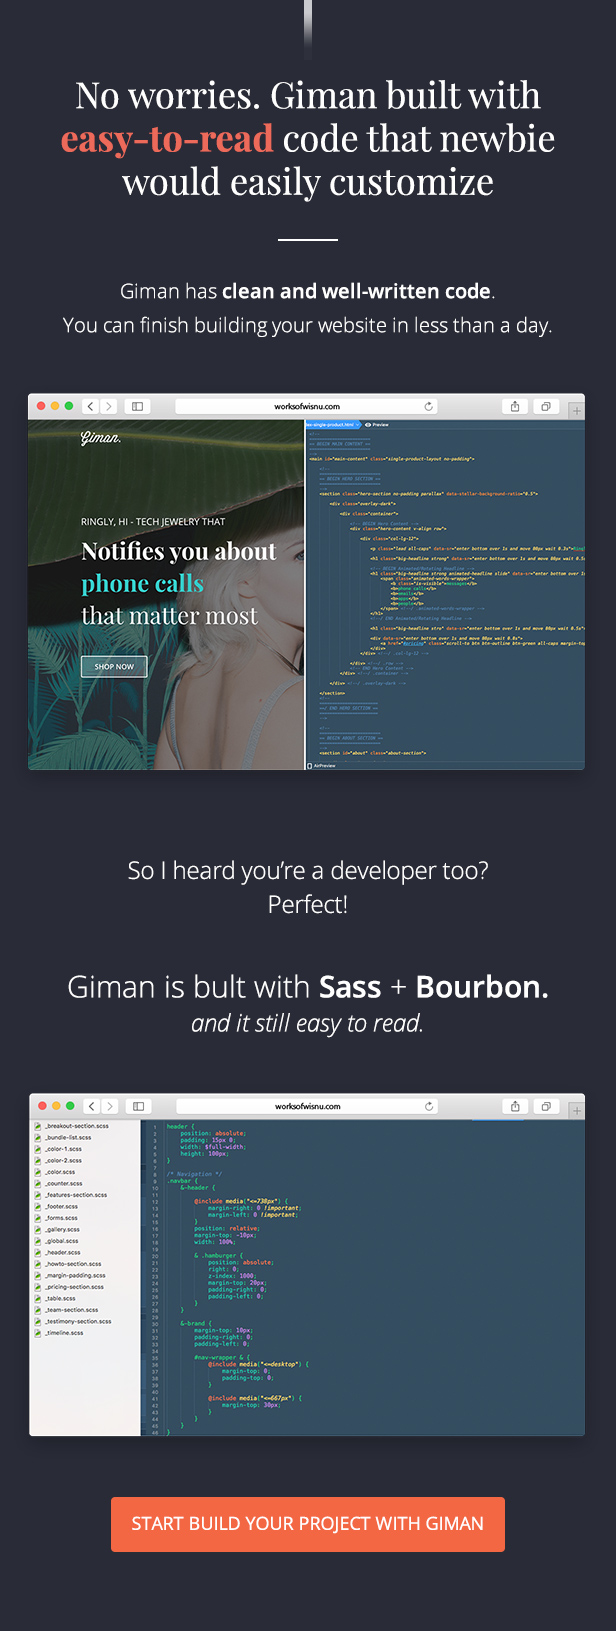 Giman is easy to read template built with Sass